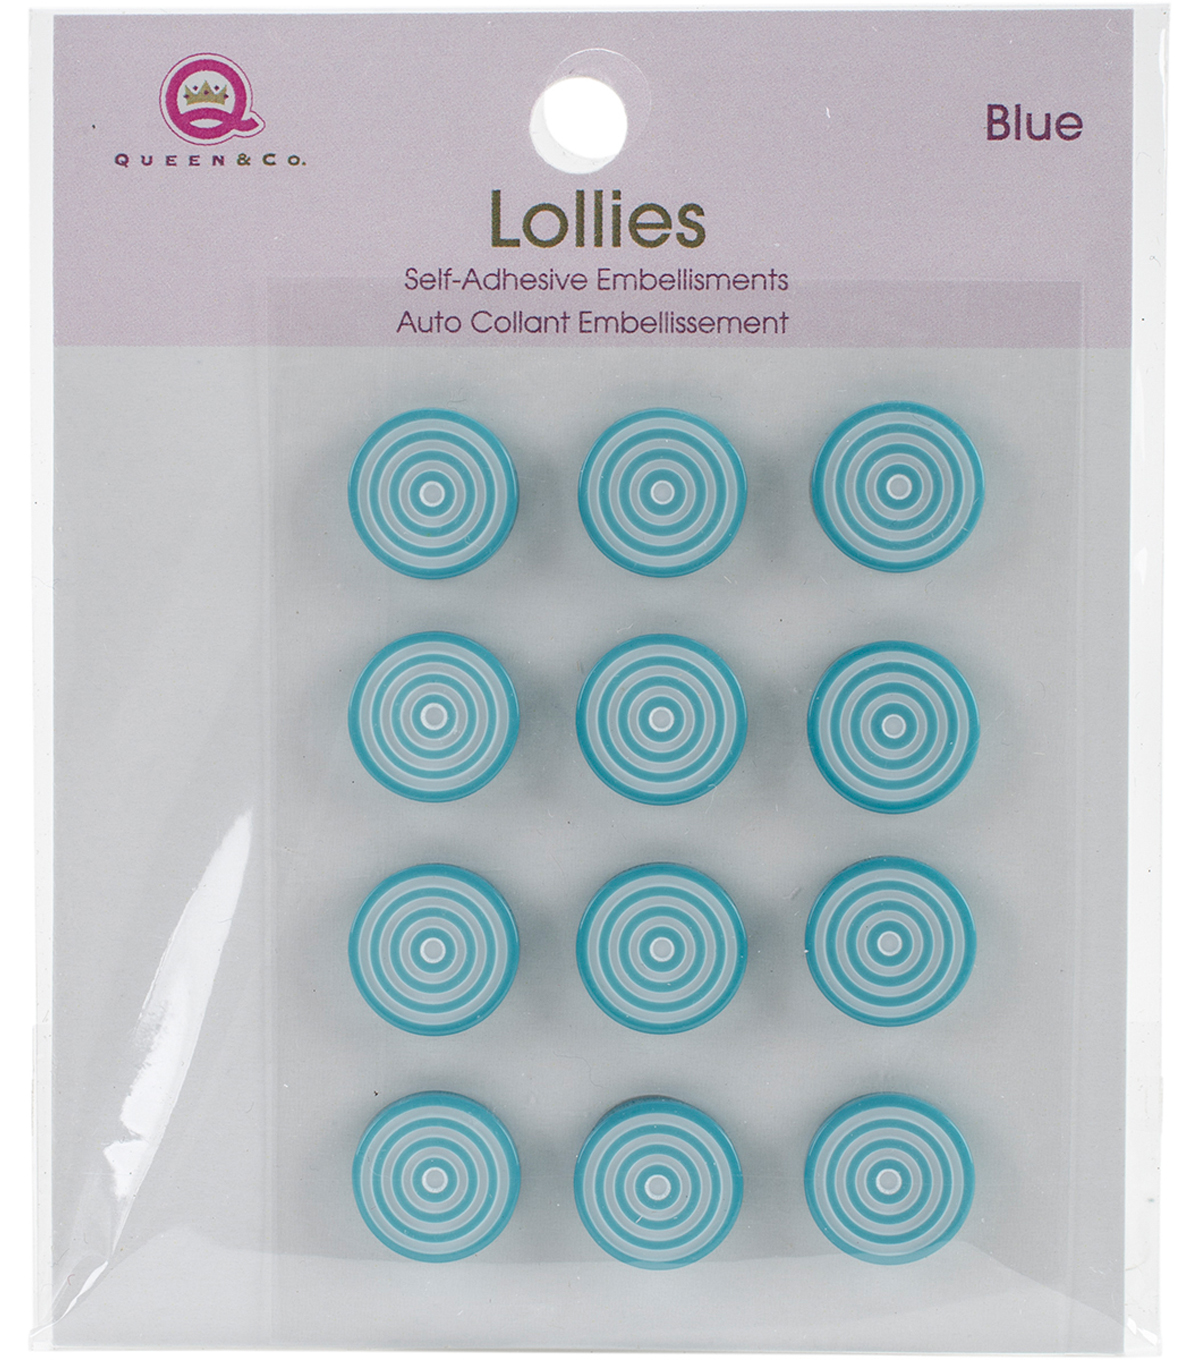 Queen & Co. 12 pk Lollies Self-Adhesive Embellishments-Blue